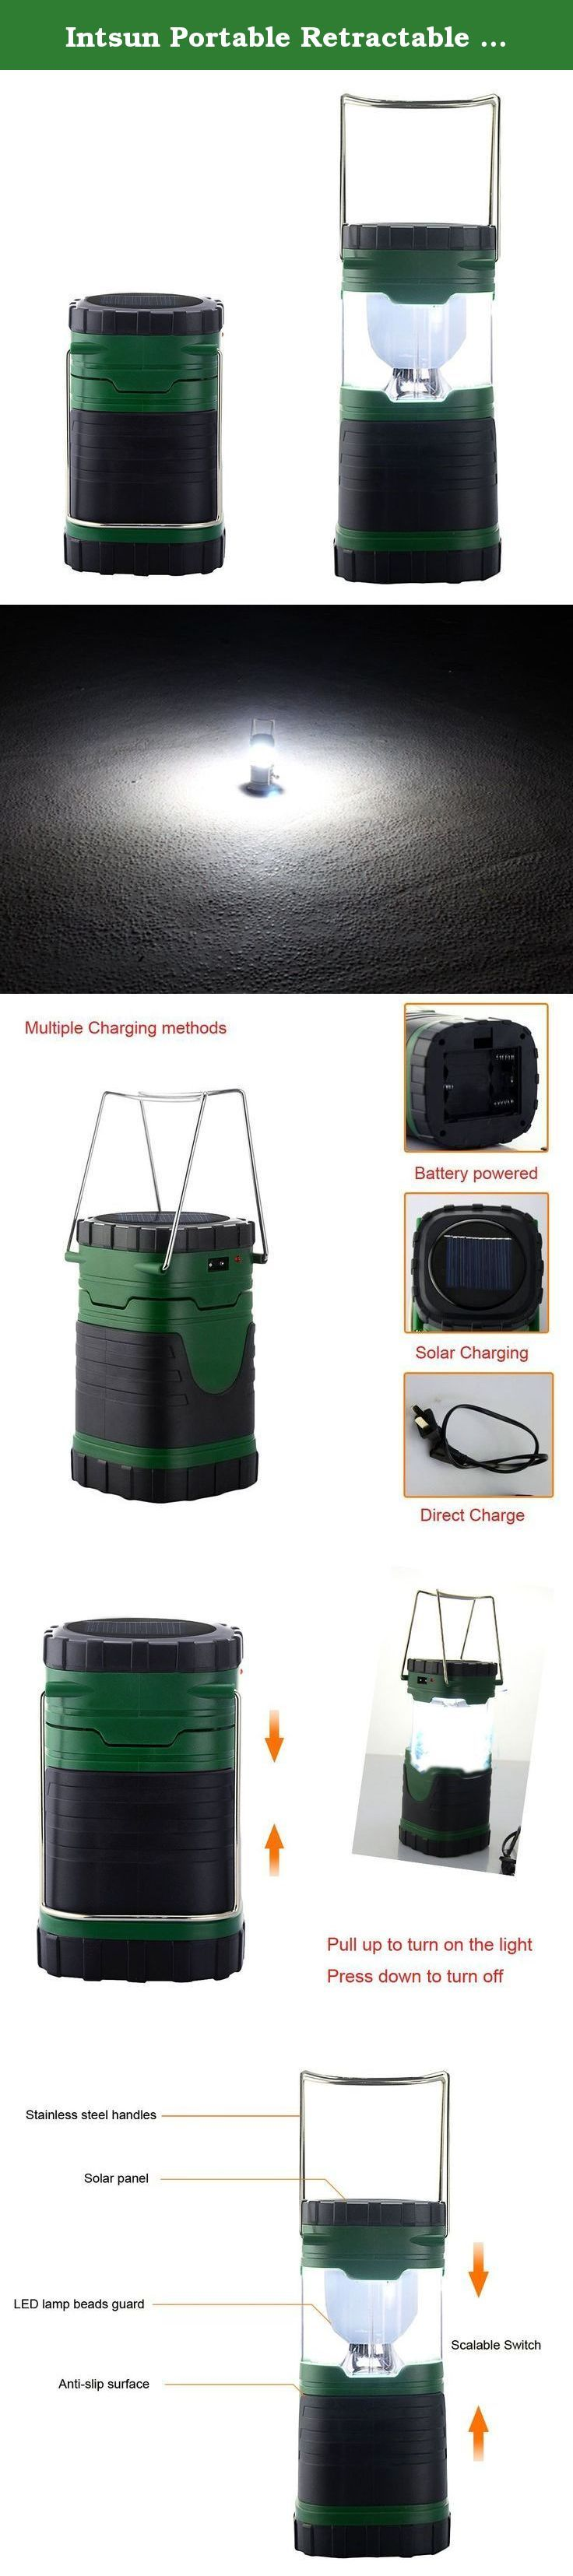 Intsun Portable Retractable Solar Scalable Tent Camping Lantern Lamp, 4V/12W USB Rechargeable 6 LED Folding Camping Outdoor Lighting, Emergency Lights for Hiking Fishing. Specifications: * Battery: 1000mAh Battery Bult-in * Charging time from AC adapter: 3-4 hours * Working time from AC adapter: 5-6 hours * Rechargeable: Yes * Charging Method: Solar Powered, AC Adapter or 3 x AA Battery(not included) * Super bright 6-LED 300 lumens * Dimensions:18.5CM * 8.5CM * Package Weight: 335g…